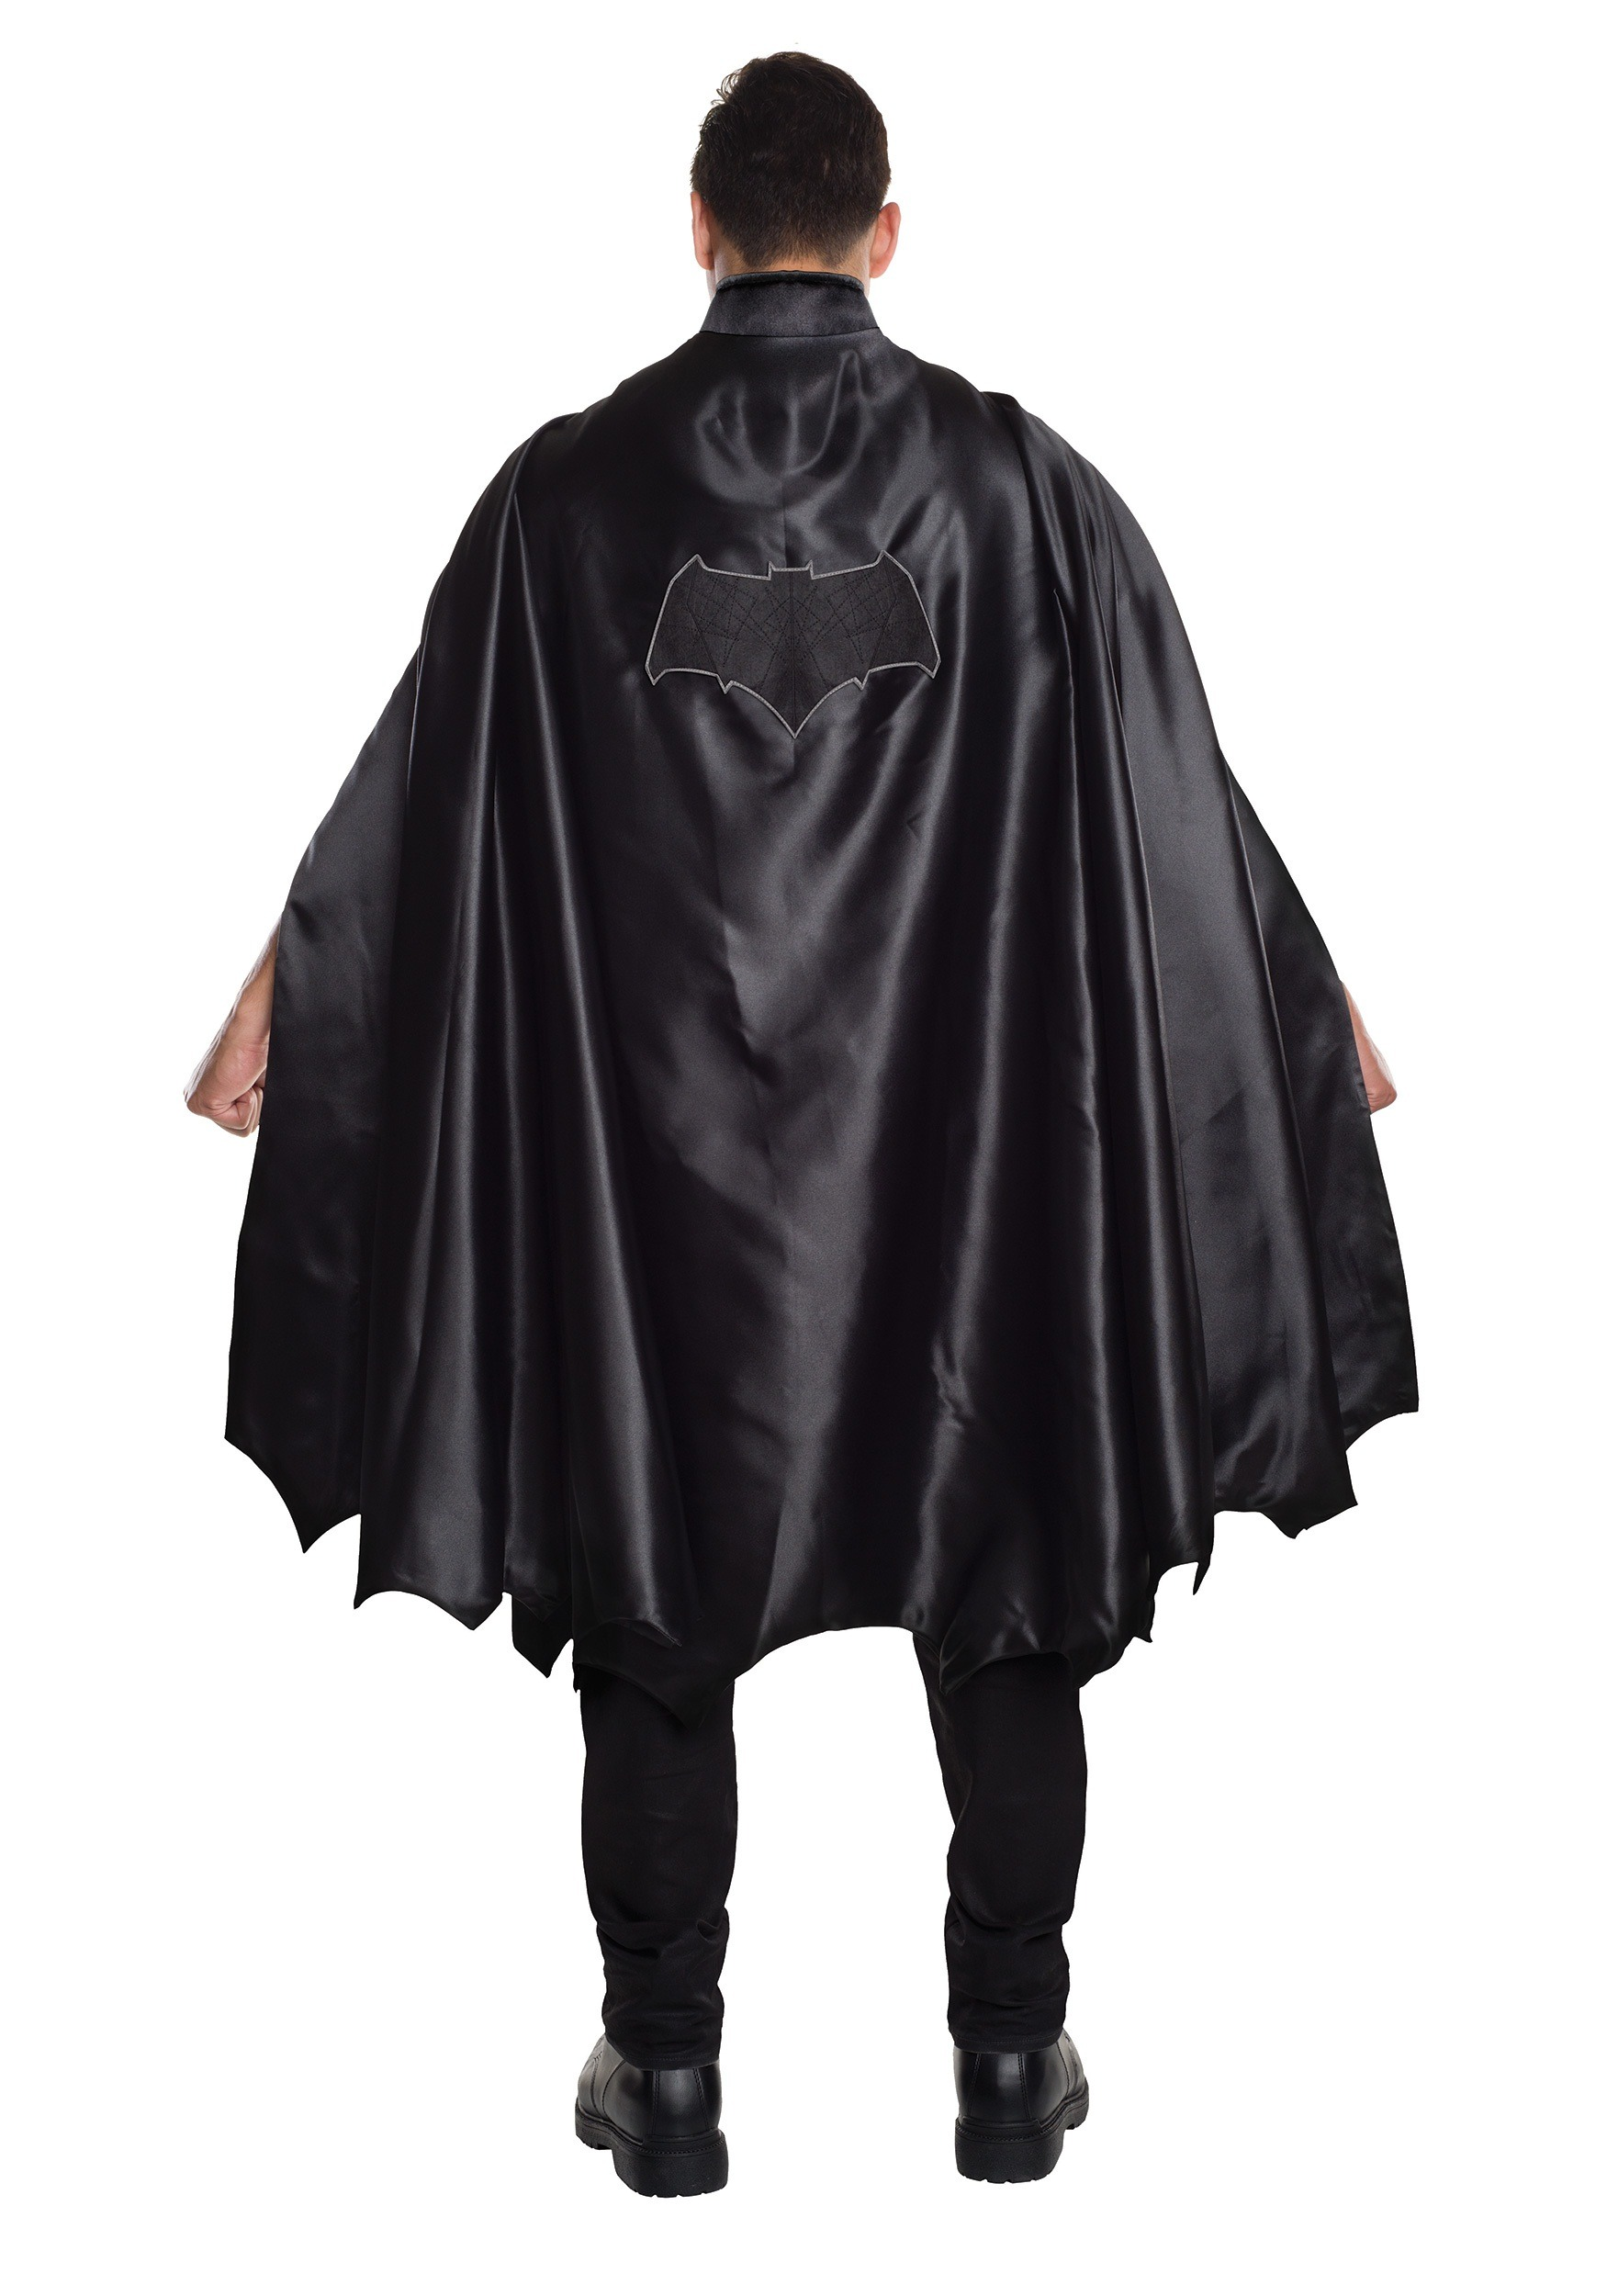 Toddler Bat Halloween Costume